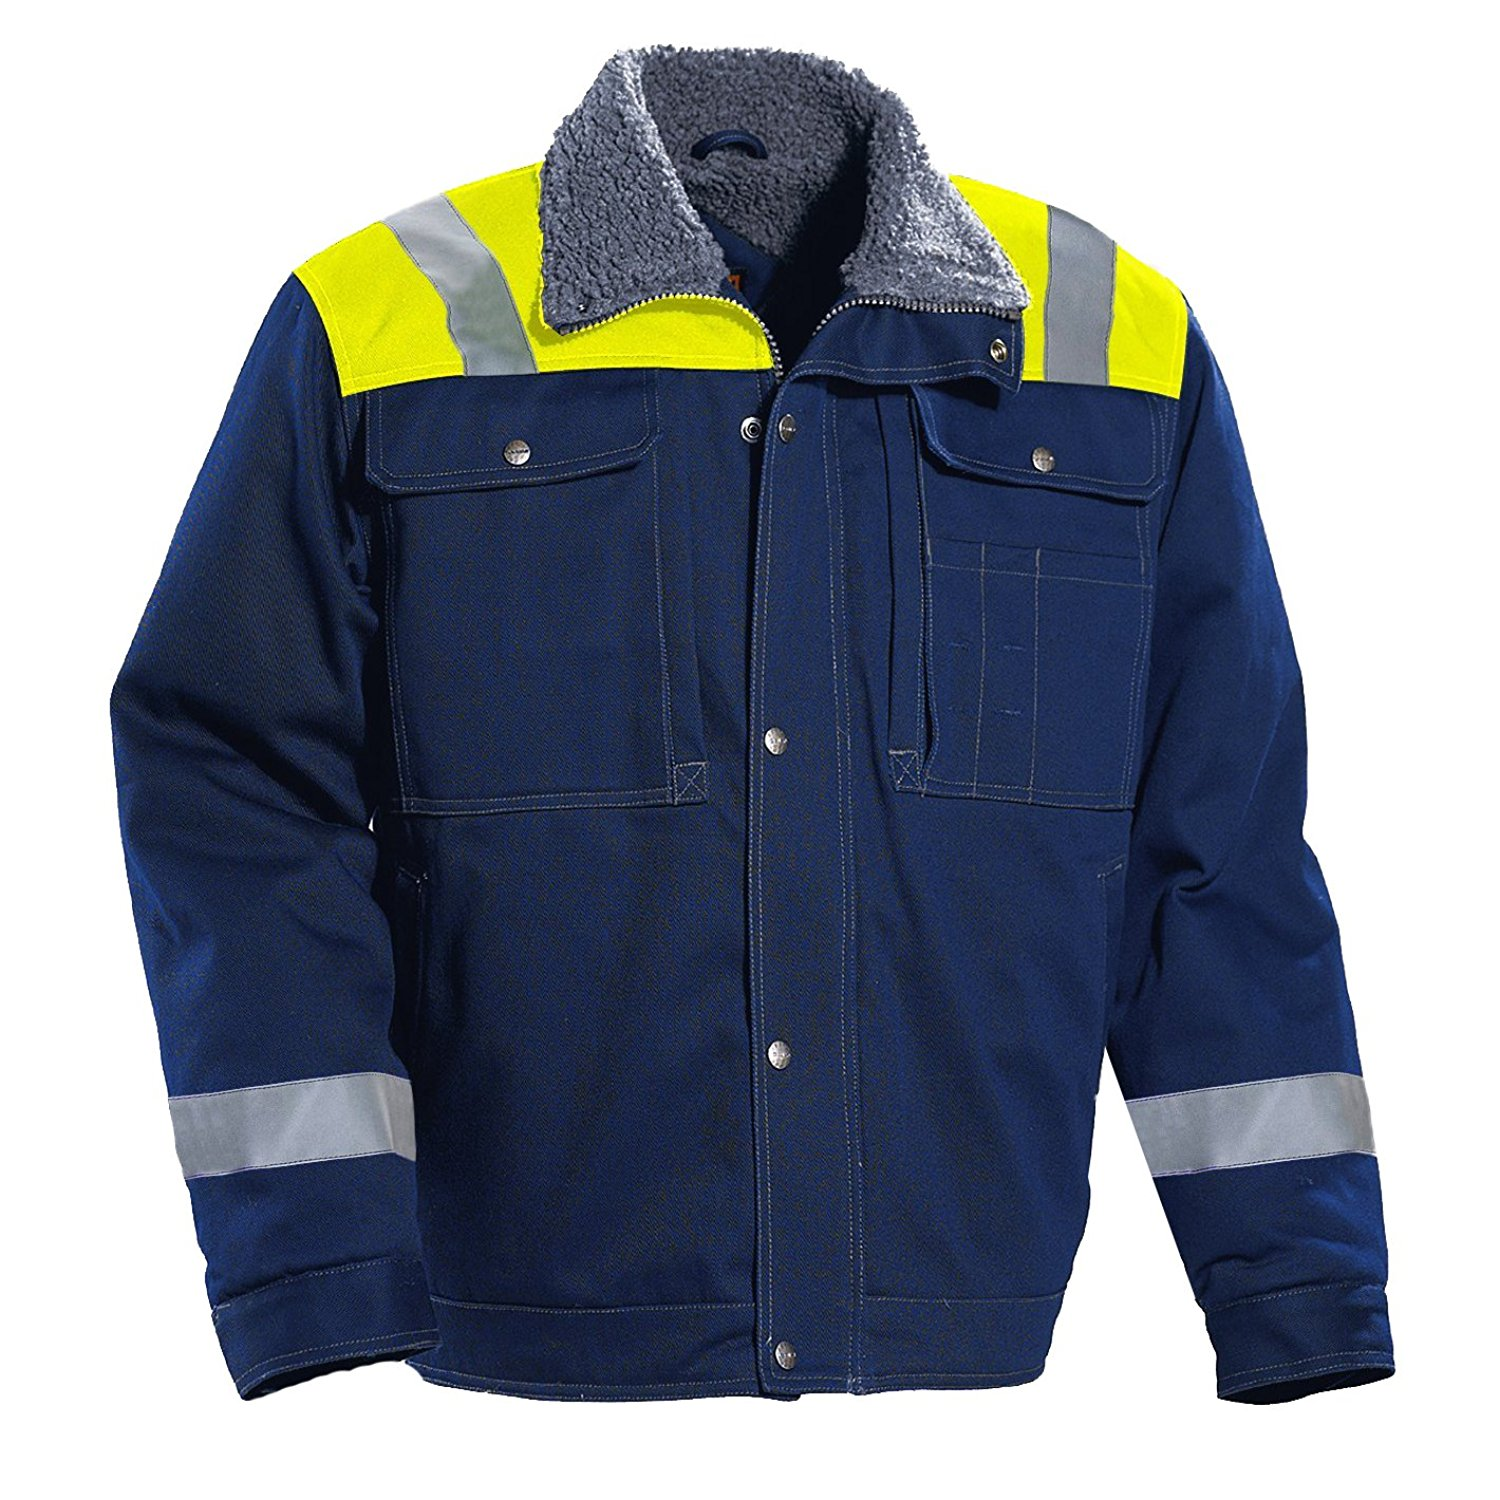 Cheap Hi Vis Winter Workwear Find Hi Vis Winter Workwear Deals On